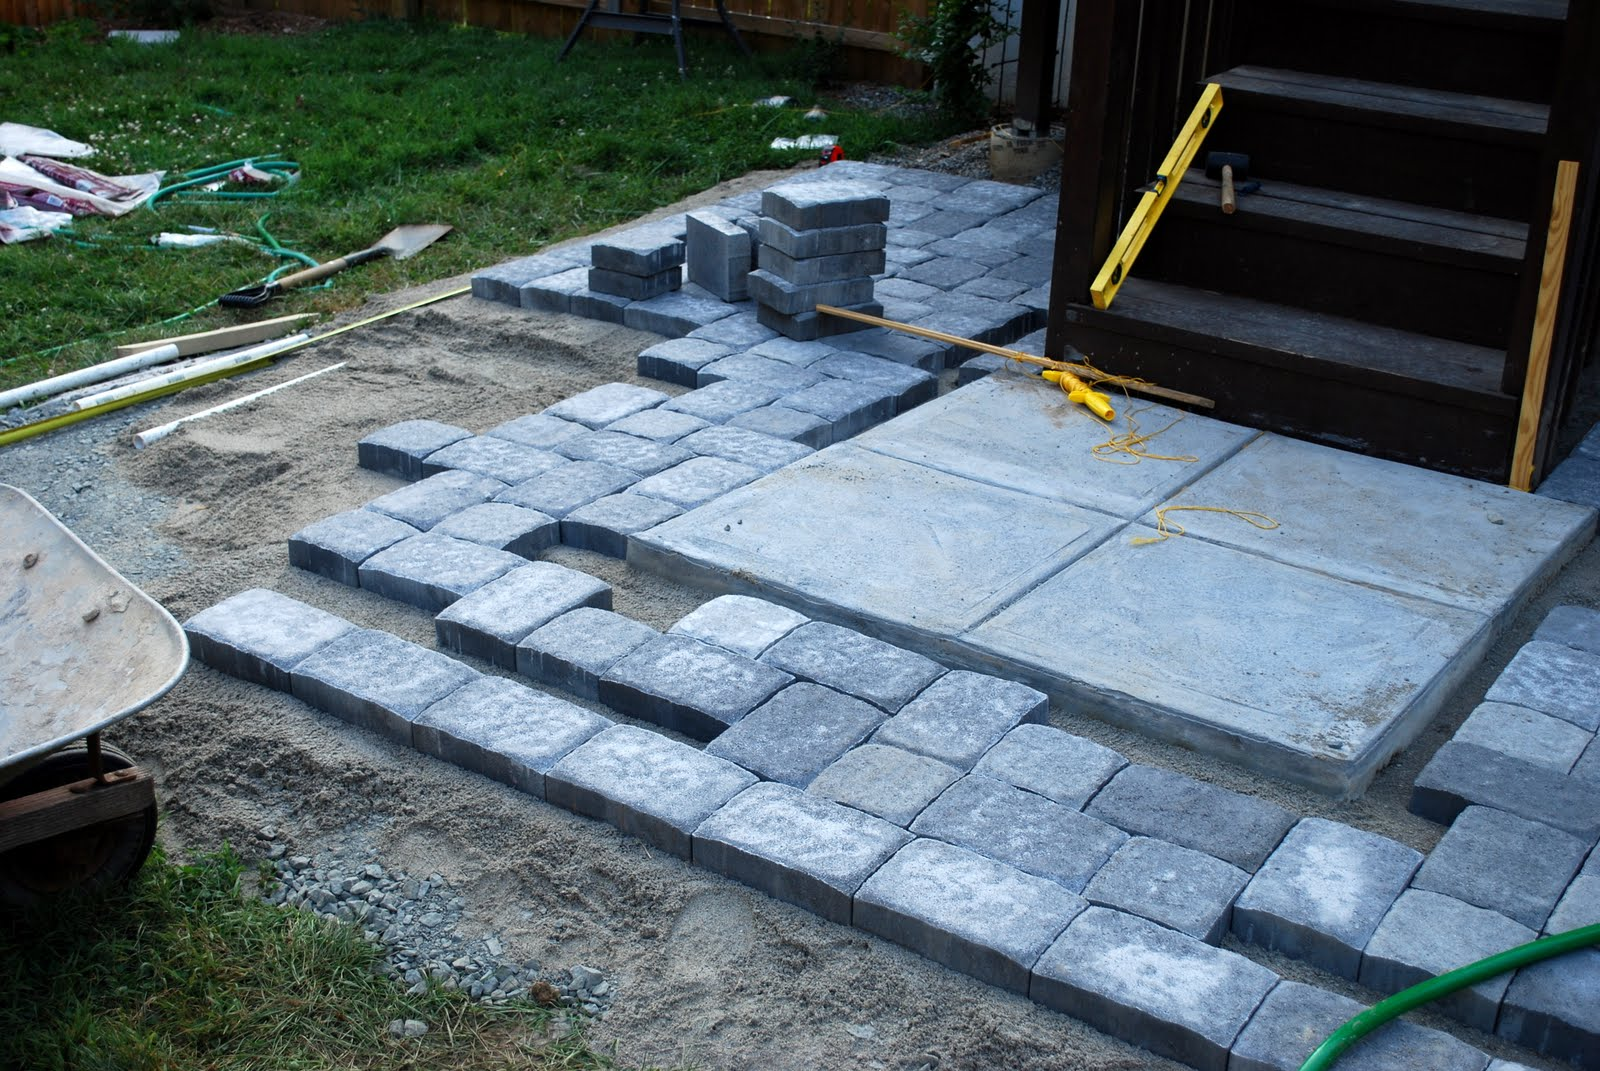 Building A Paver Patio  Patio Design Ideas. Cheap Outdoor Patio Areas. Outdoor Furniture Outlet Singapore. Lounge Furniture Rental Price List. Patio Furniture Outlet Phoenix. Deck And Patio Columbus Ohio. Outdoor Furniture Sale Victoria. Lounge Furniture Rental In Los Angeles. Hampton Bay Patio Furniture Melbourne Collection